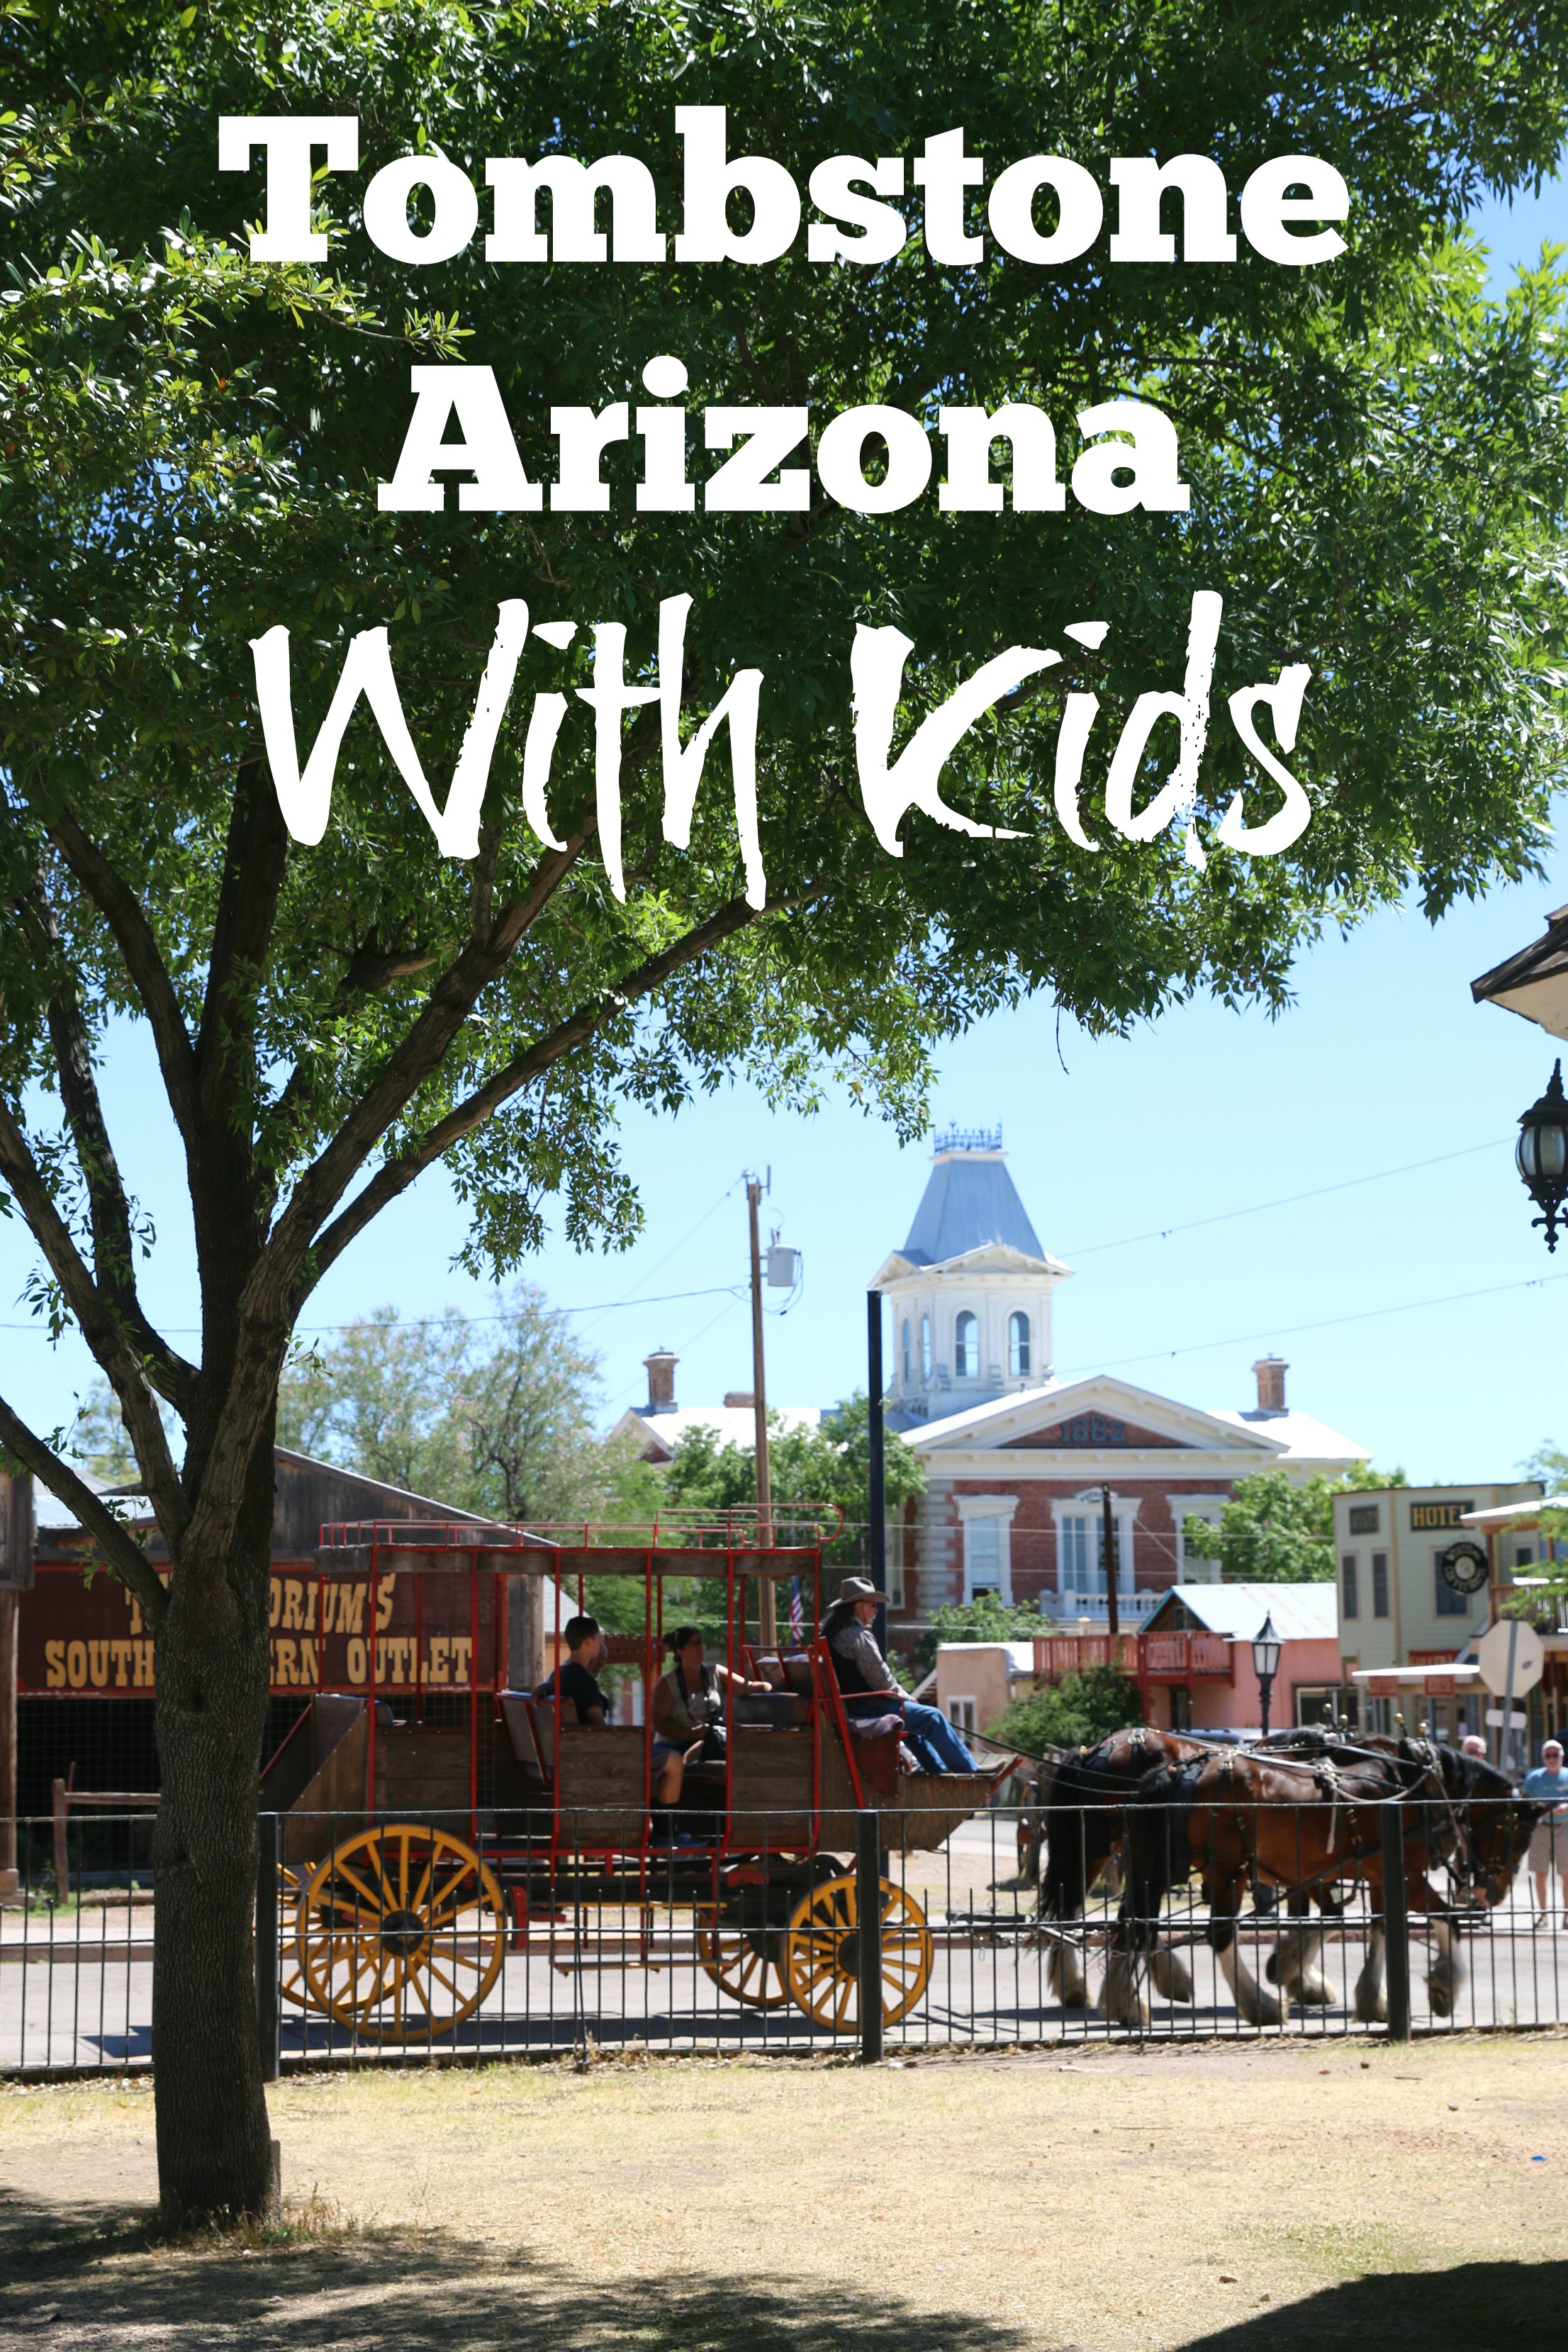 Tombstone Arizona Guide With Kids